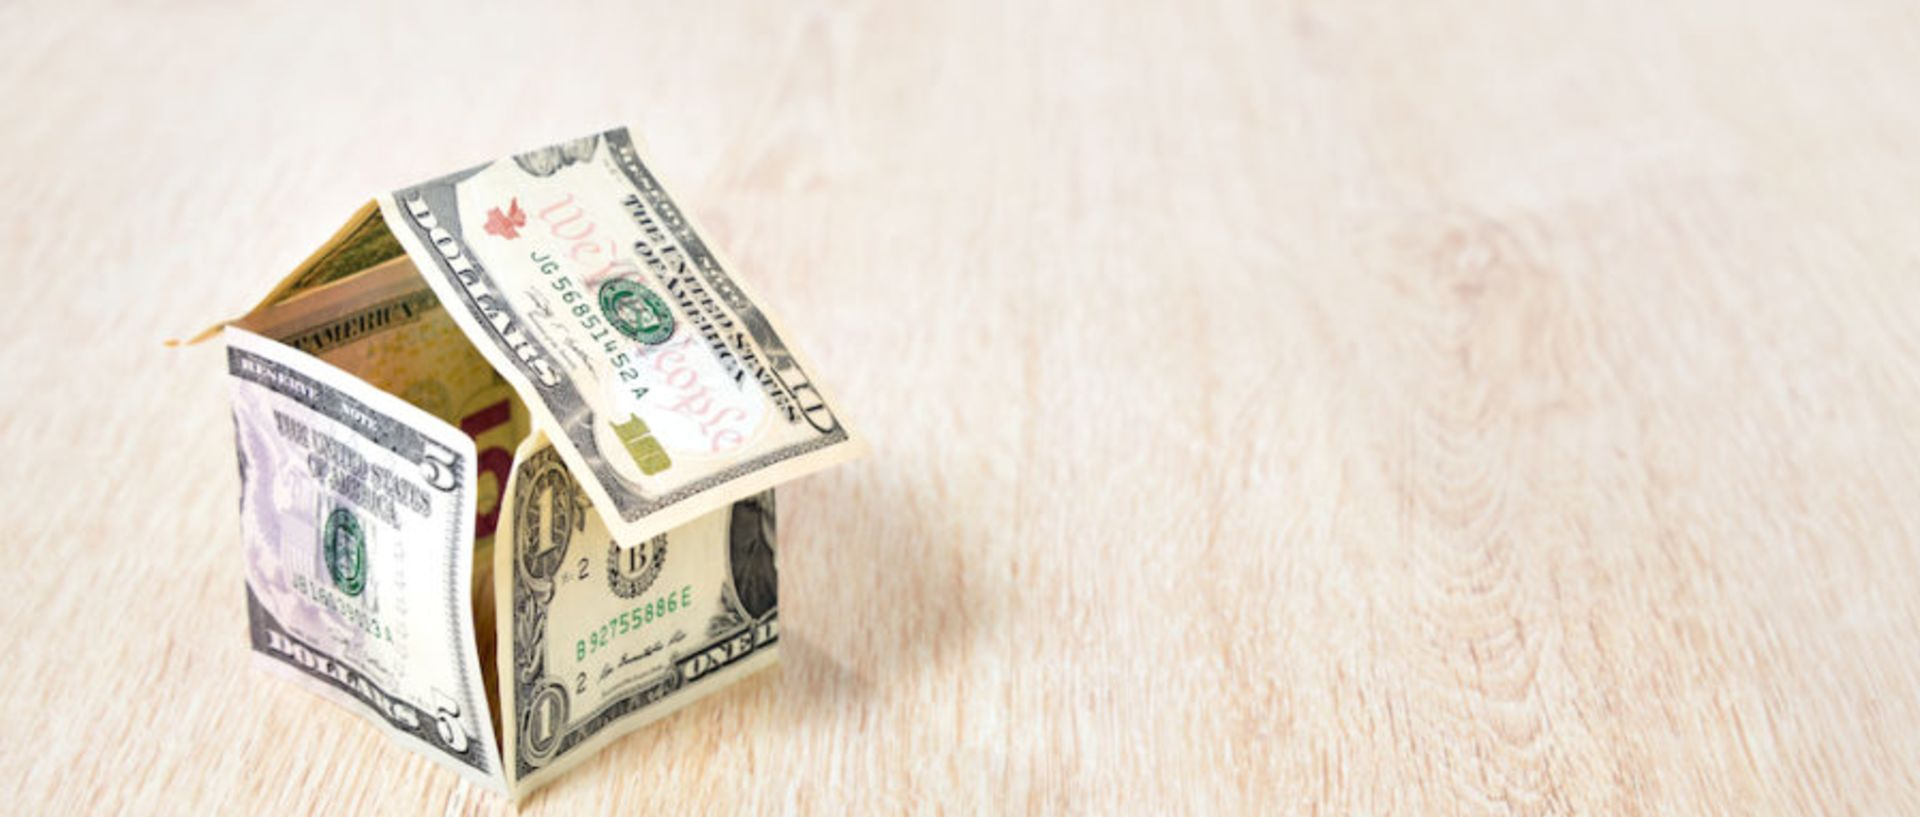 Harvard: Americans have more equity, less mortgage debt